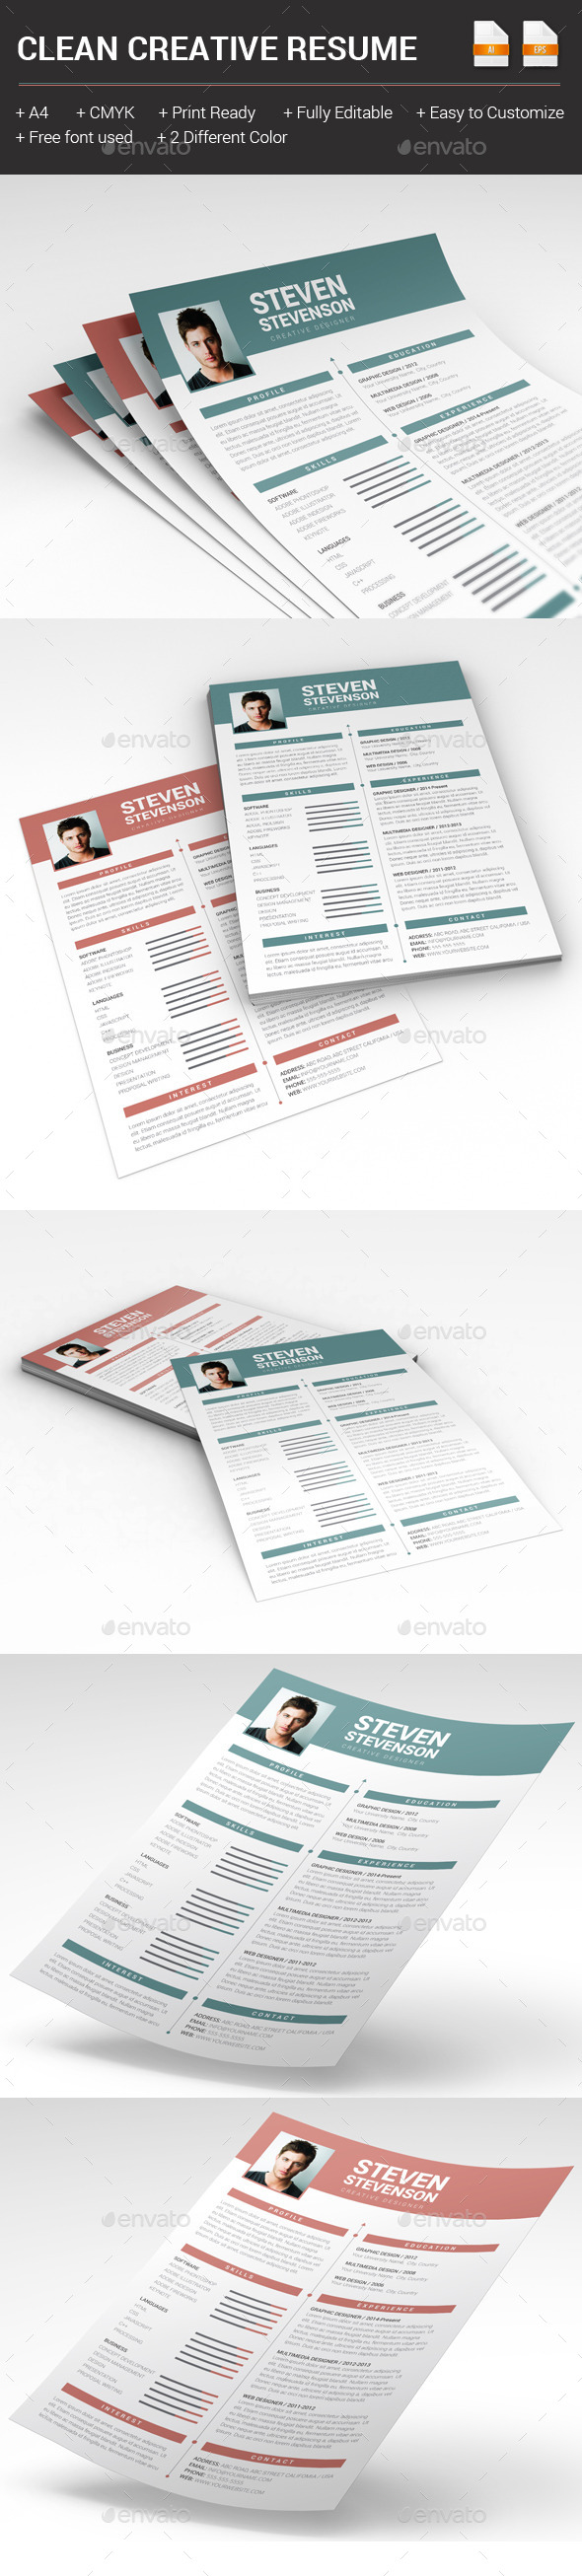 GraphicRiver Clean Creative Resume 10289095